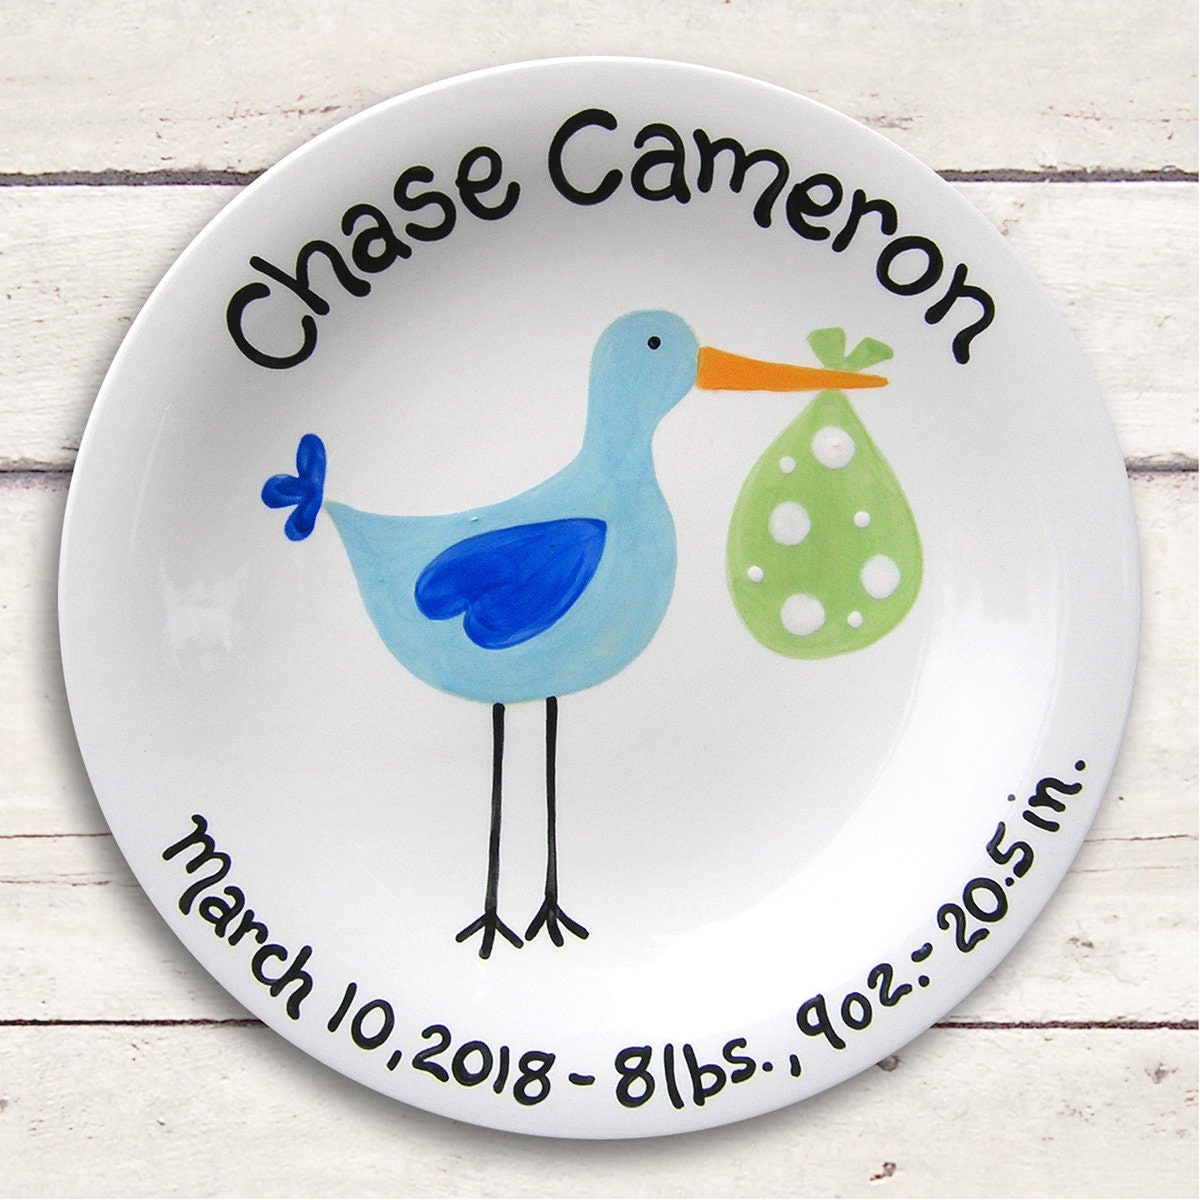 Baby stork ceramic plate hand painted baby gift stork baby baby stork ceramic plate hand painted baby gift stork baby shower sassy stork baby boy personalized gift for newborn new baby negle Choice Image